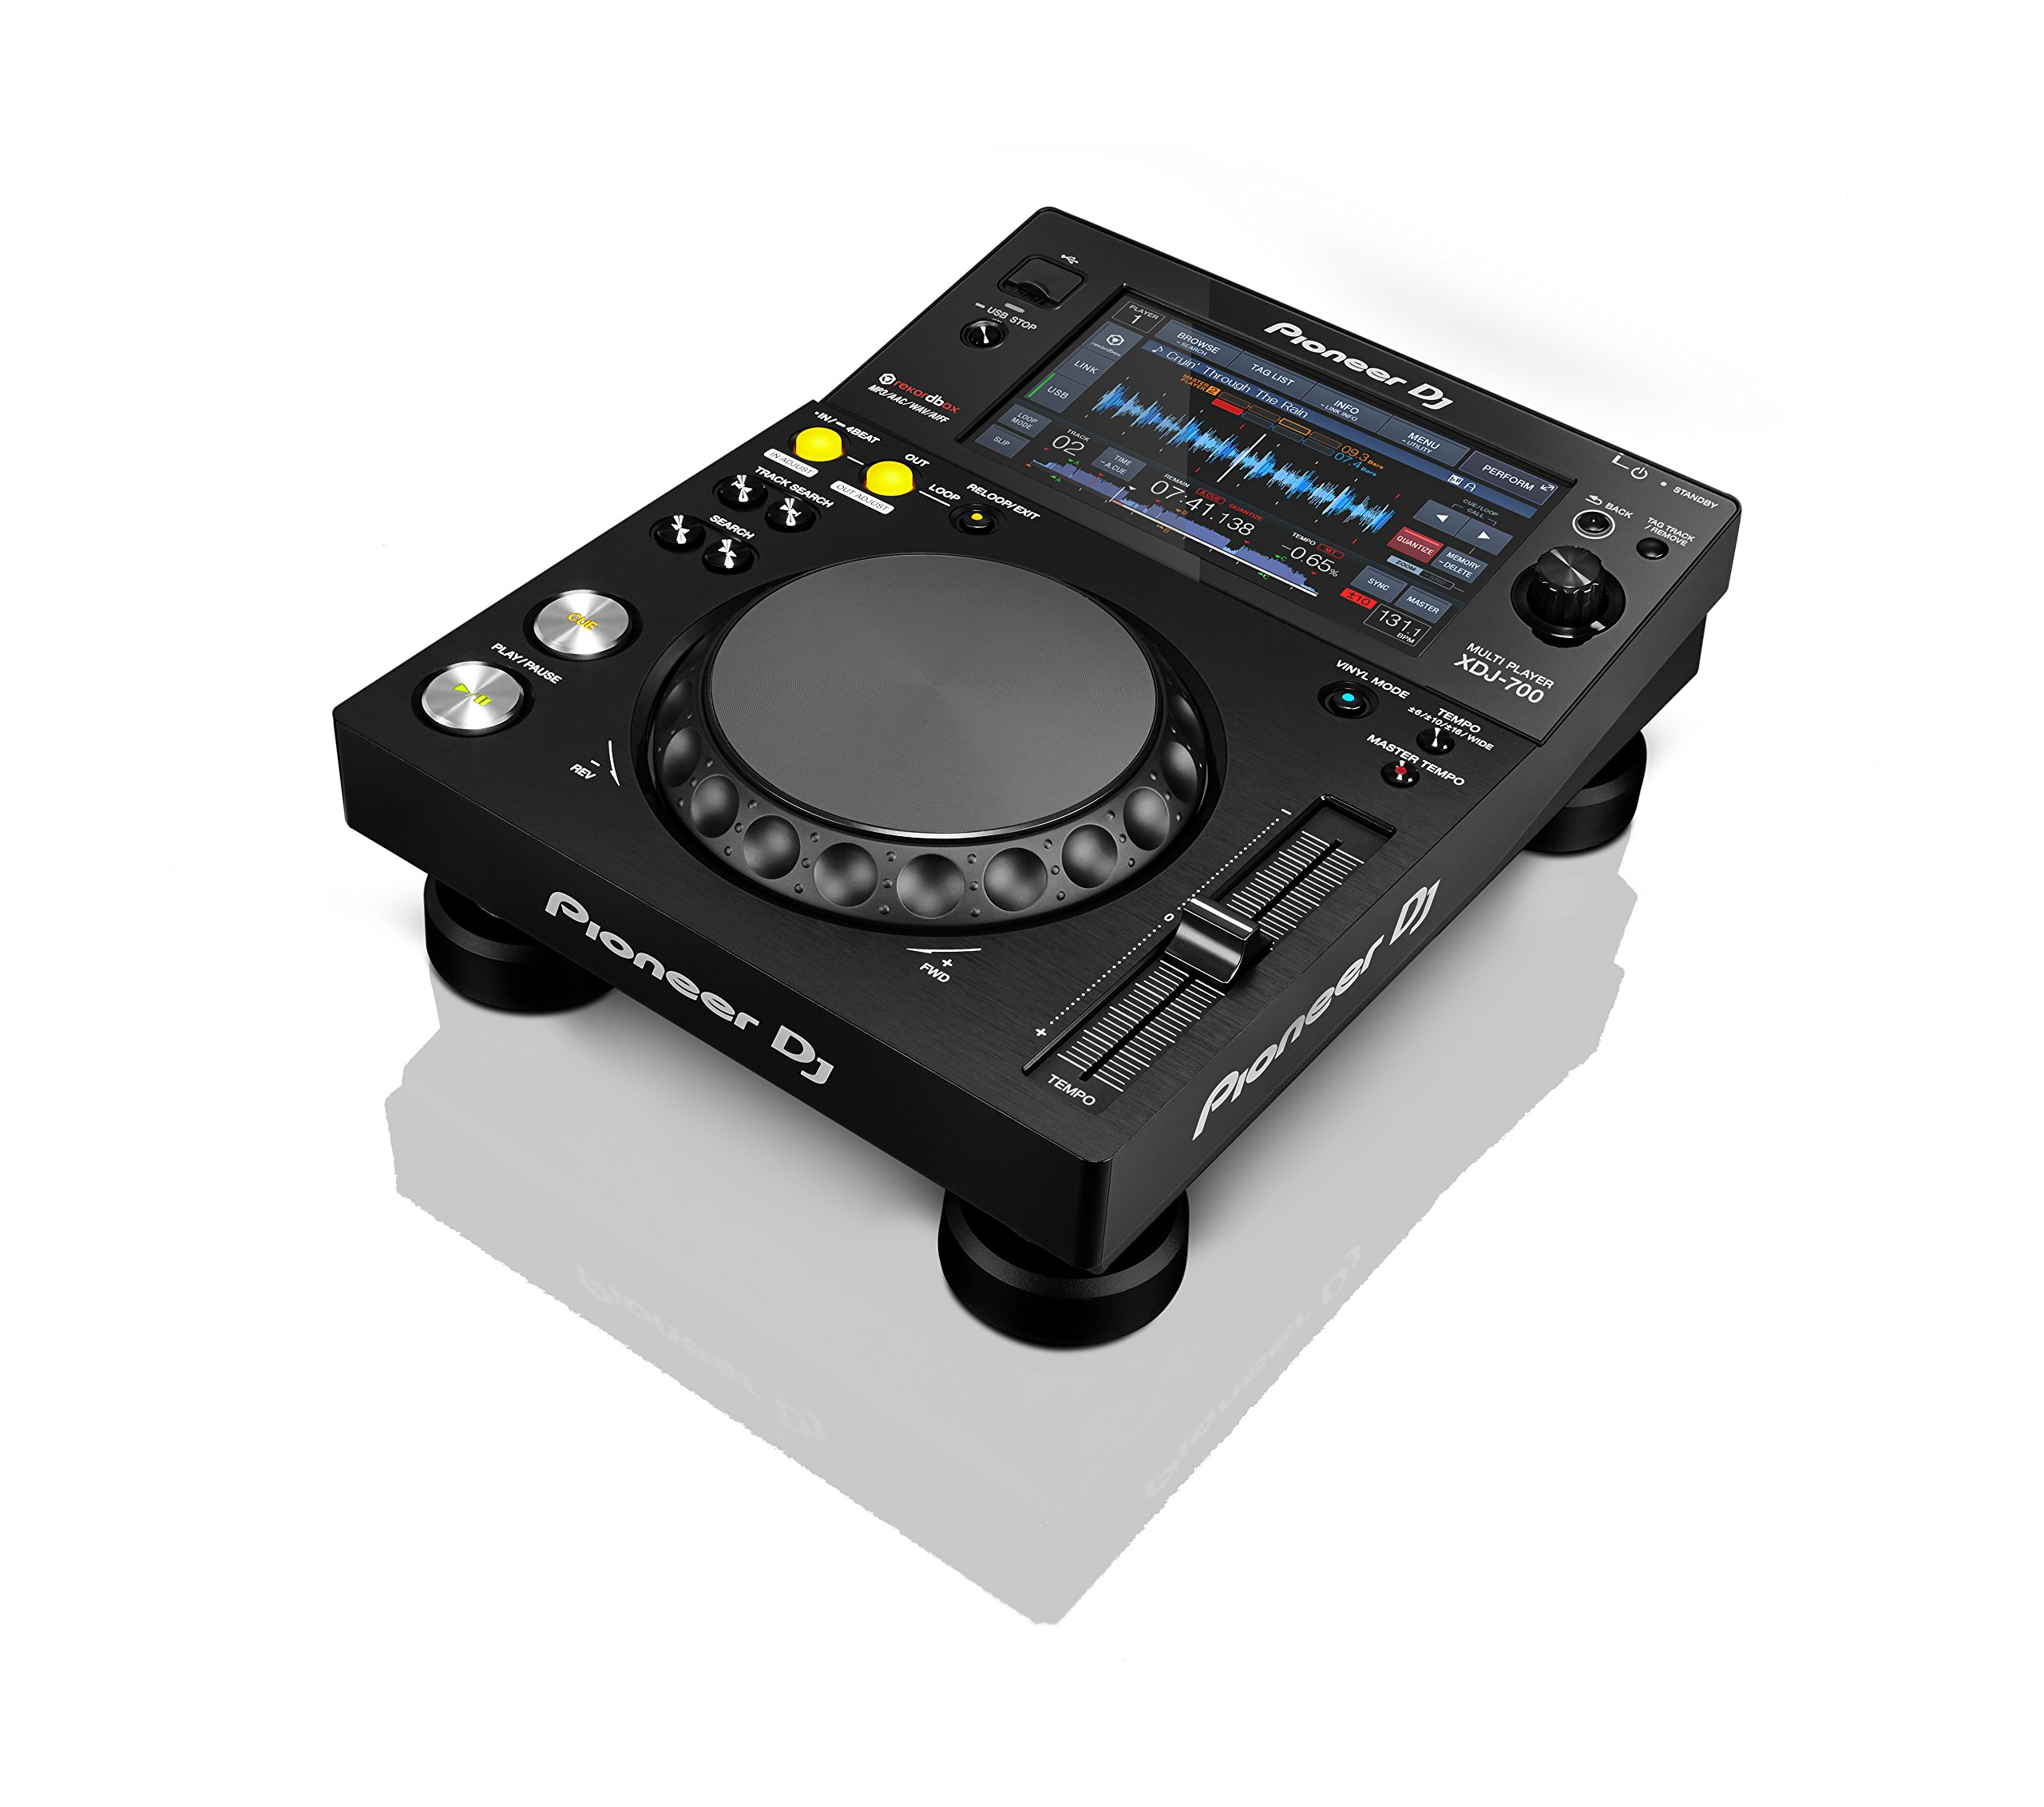 Pioneer DJ Digital Multi Media Player, Black, 8.10 x 12.80 x 16.30 (XDJ700)